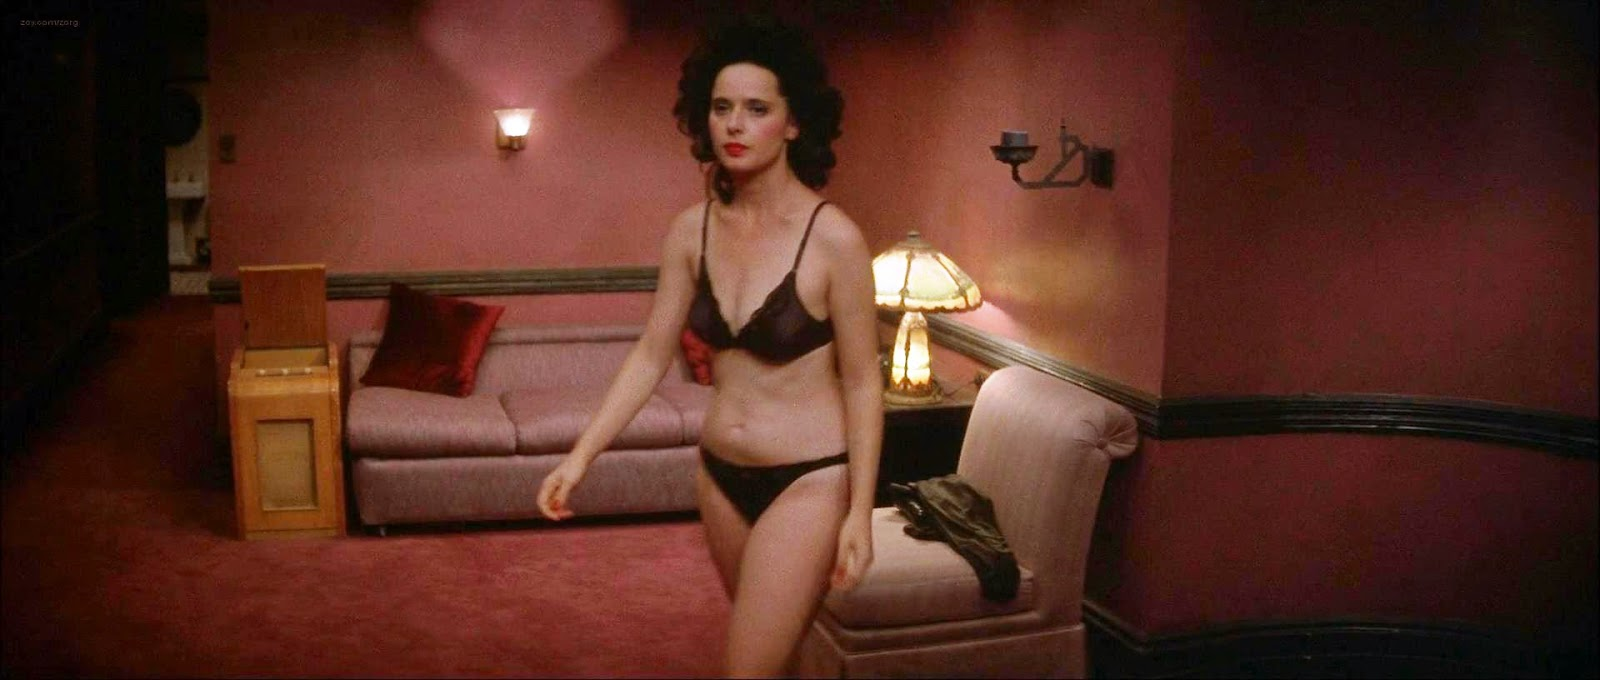 Isabella rossellini naked news xxx - Isabella rossellini nude full frontal  bush and topless in blue